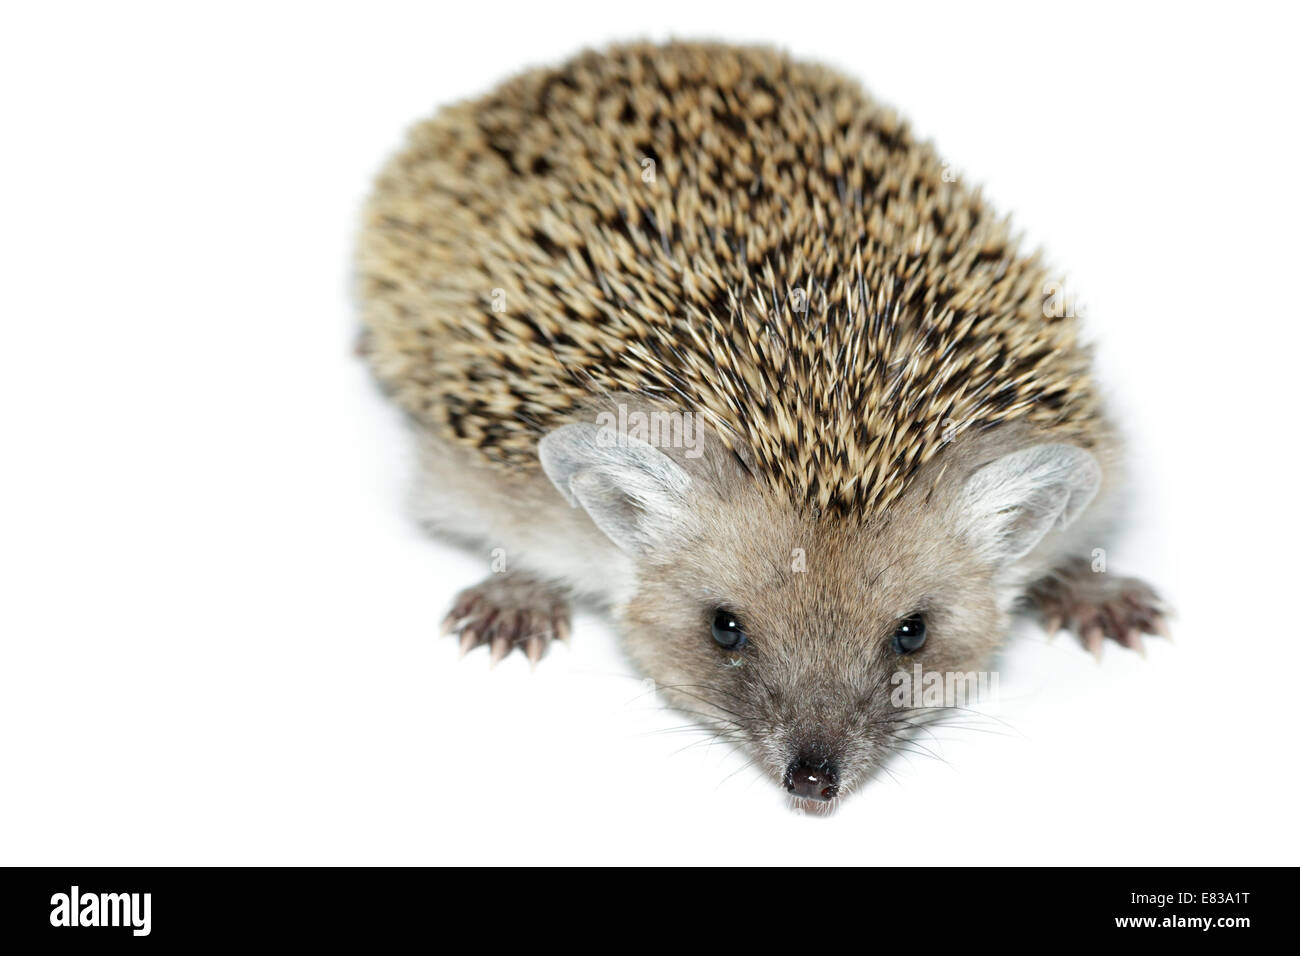 Hemiechinus auritus, Long-eared hedgehog in front of white background, isolated Stock Photo